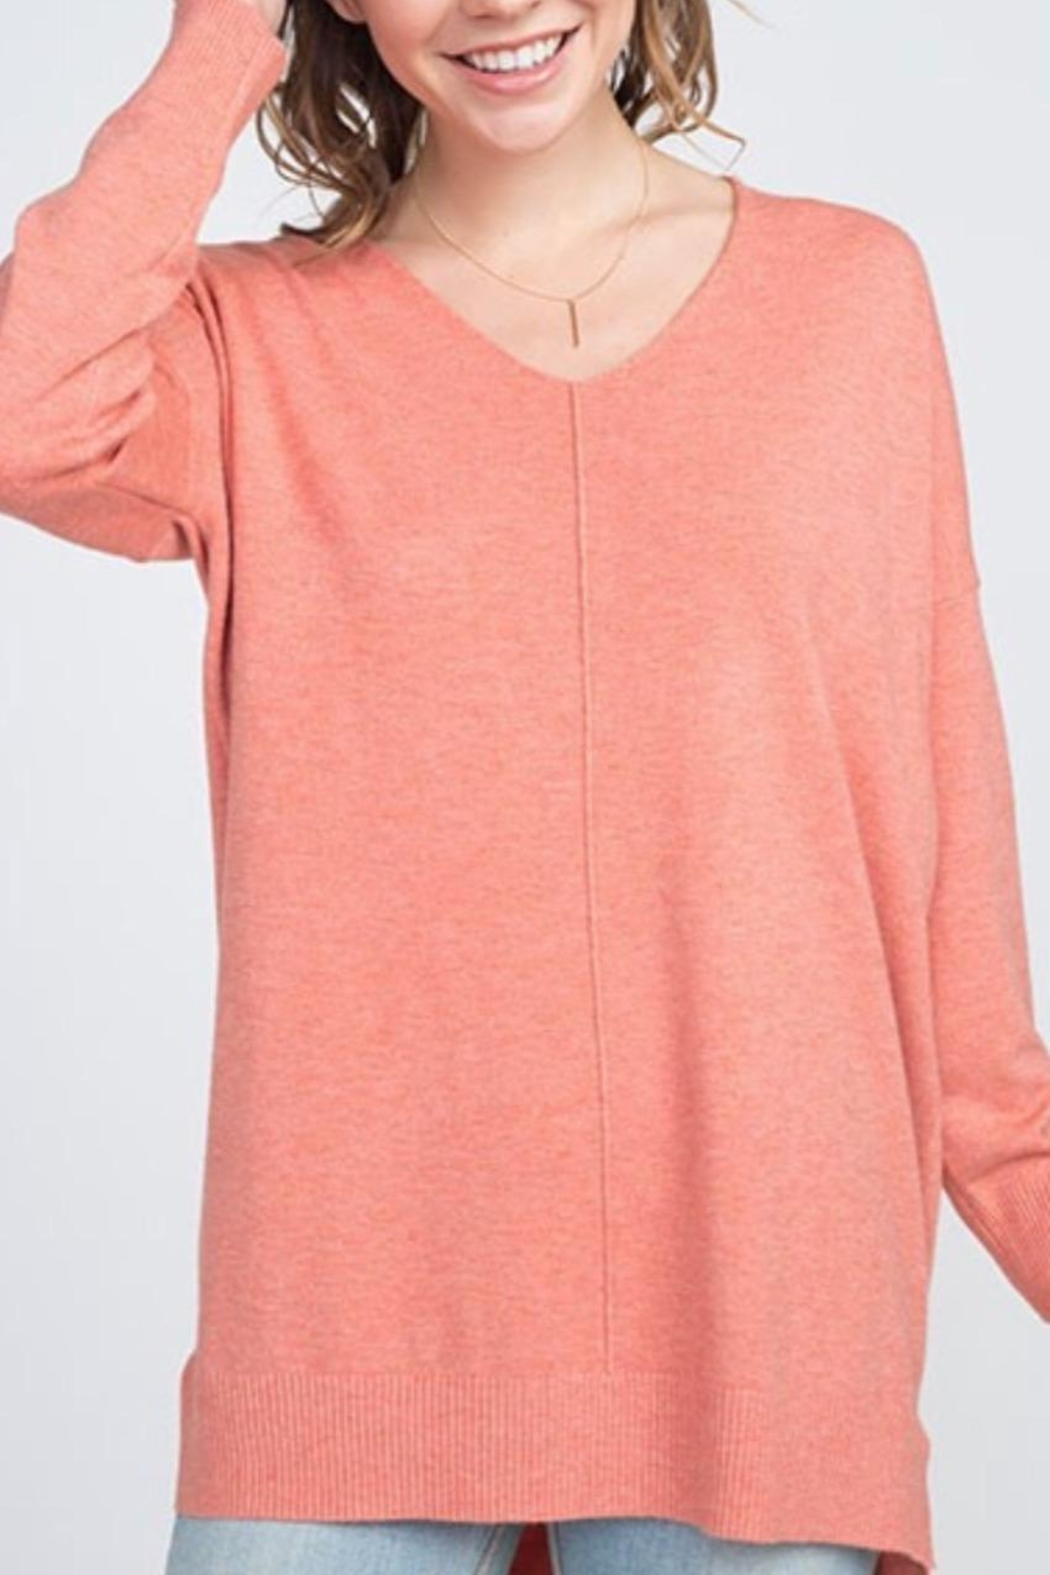 Dreamers Coral Soft Sweater - Main Image